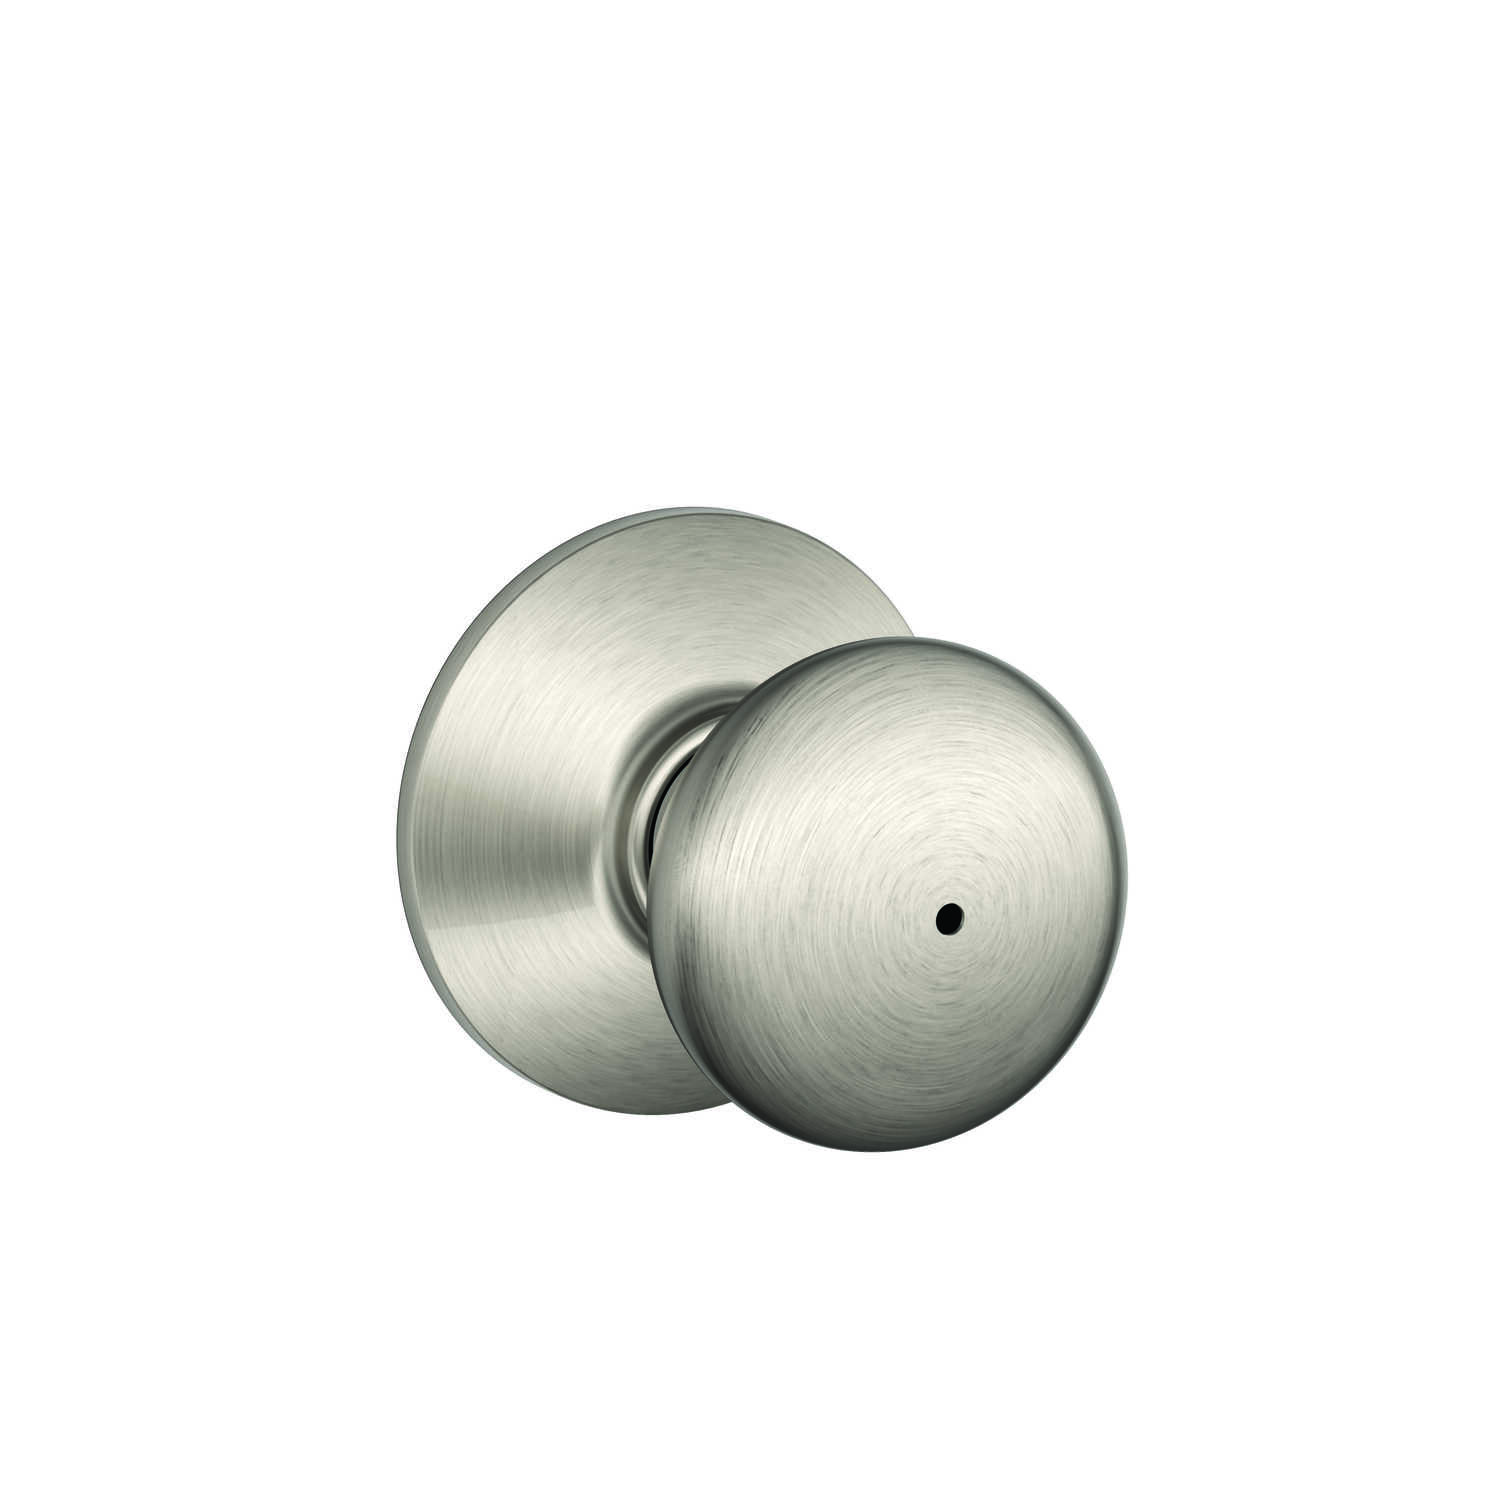 Schlage  Plymouth  Satin Nickel  Brass  Privacy Knob  2 Grade Right or Left Handed